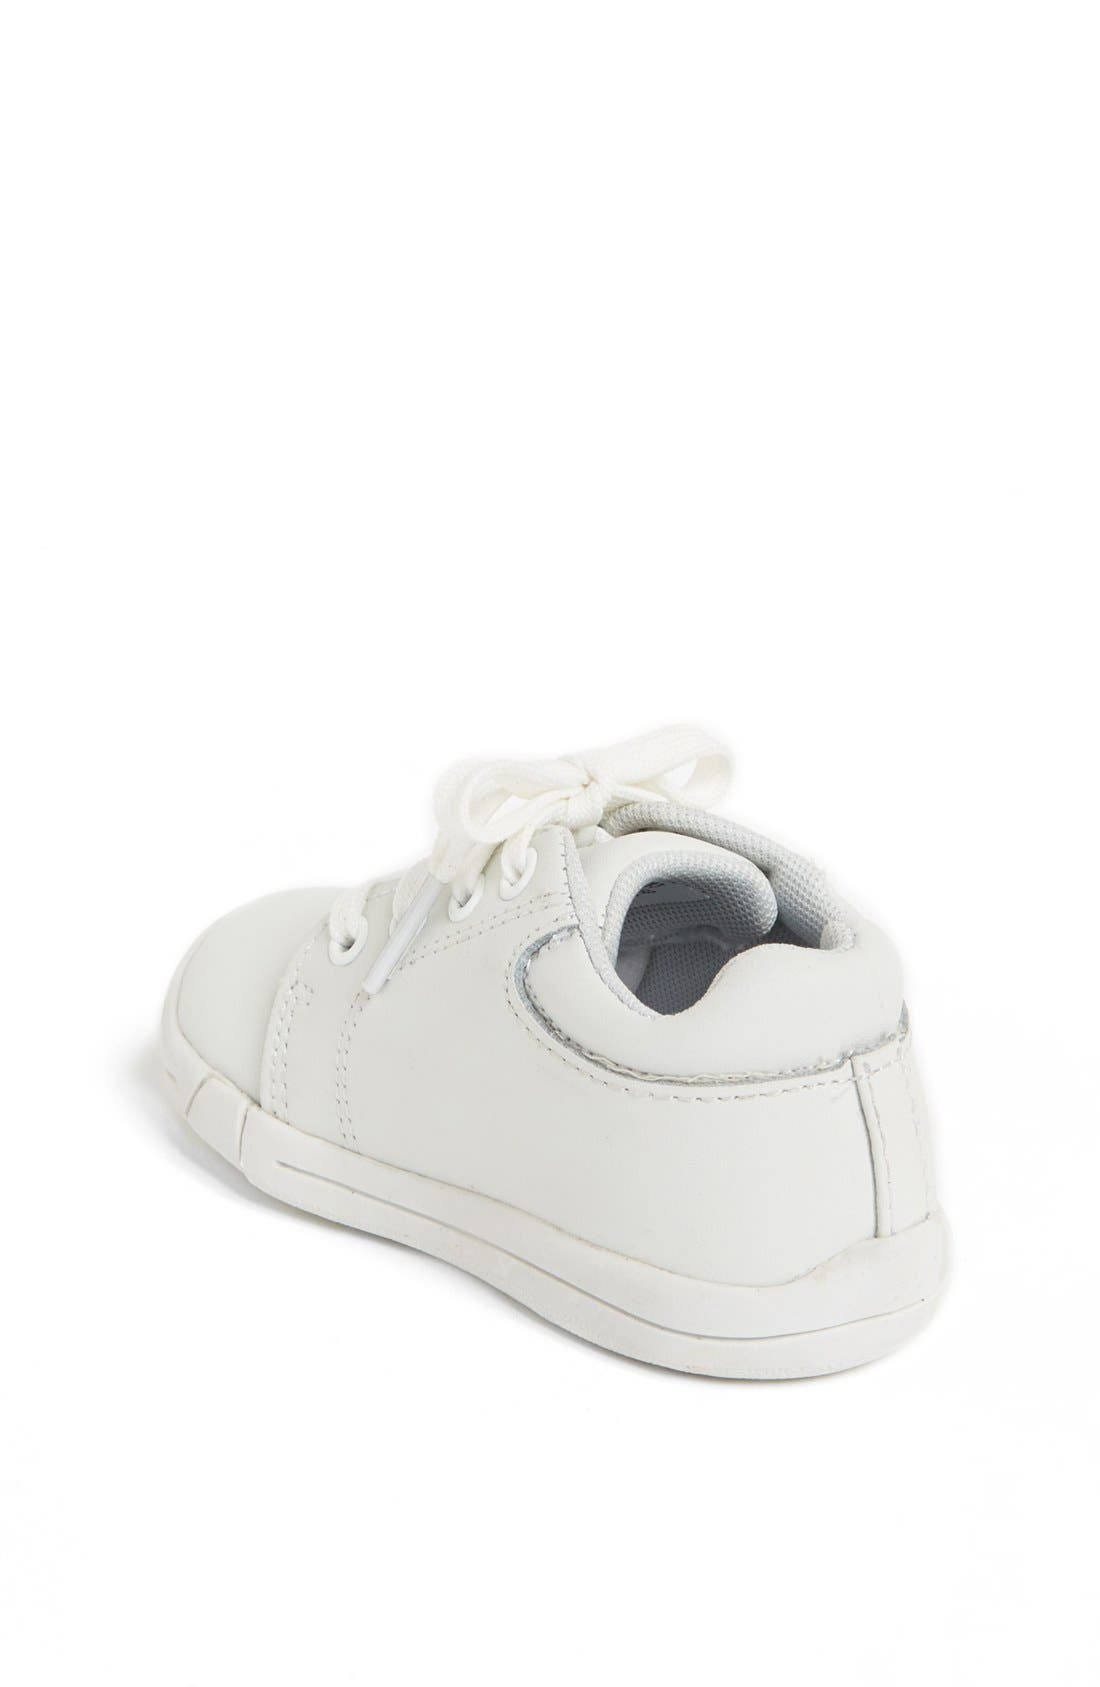 Alternate Image 2  - Jumping Jacks 'Perfection' Sneaker (Baby, Walker & Toddler)